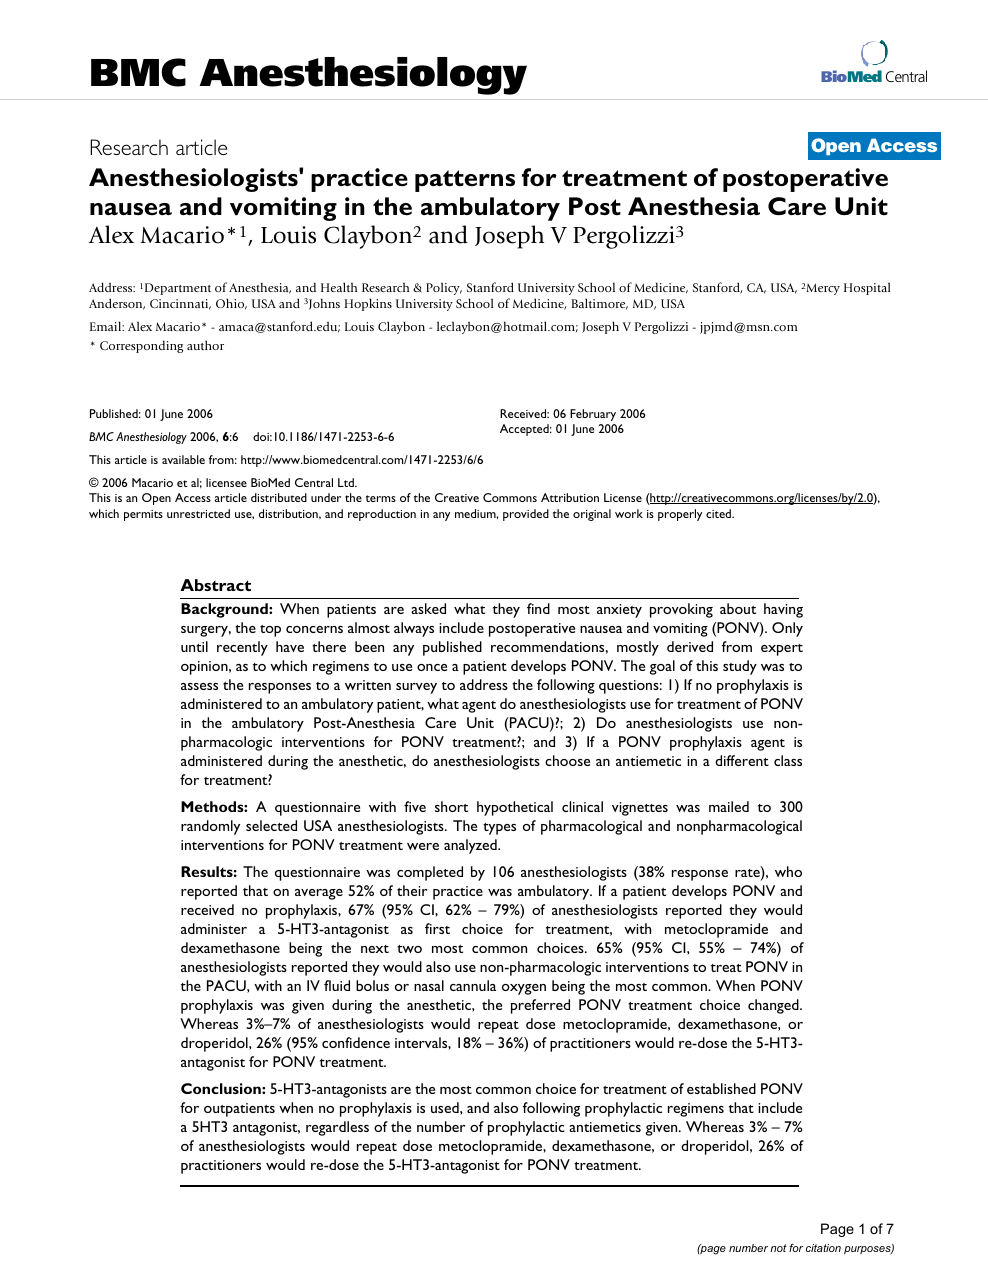 Anesthesiologists' practice patterns for treatment of